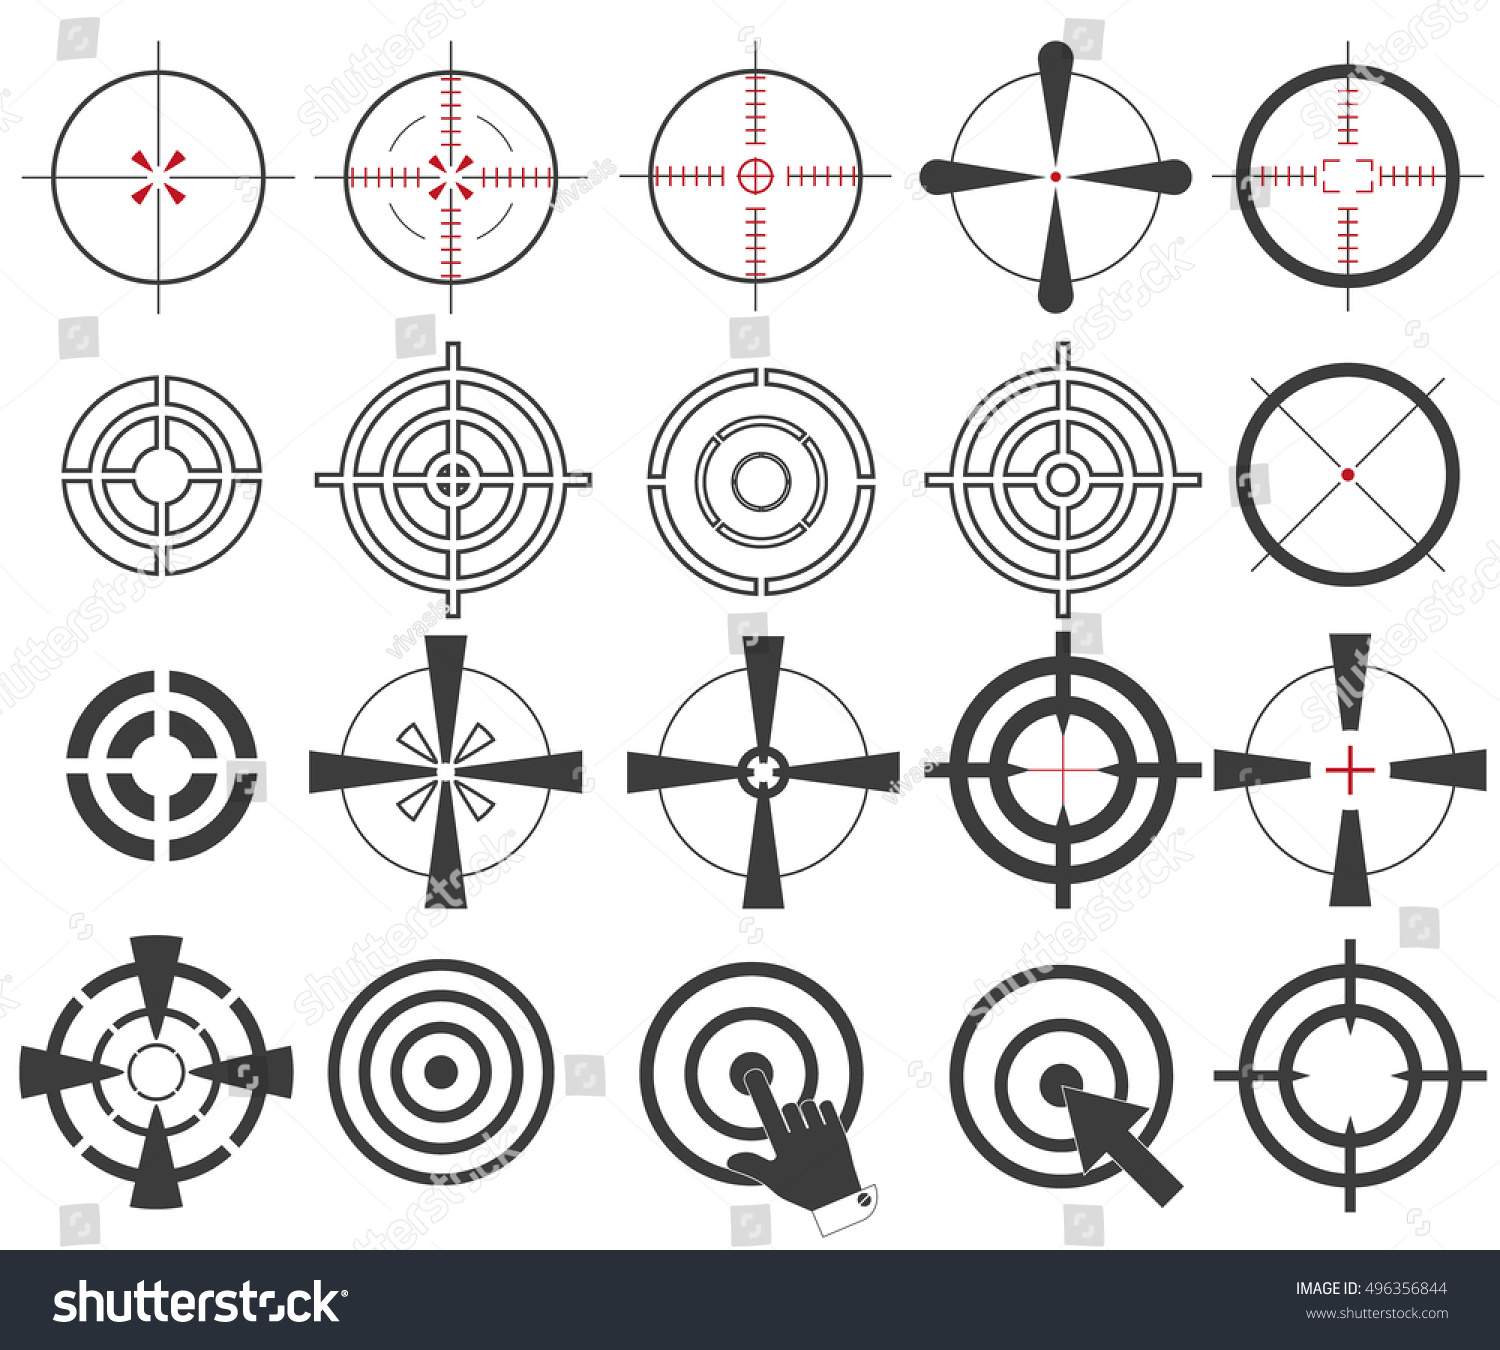 The big icon collection sight target stock vector 496356844 the big icon collection sight target symbol sniper scope isolation on a white background stylish buycottarizona Image collections